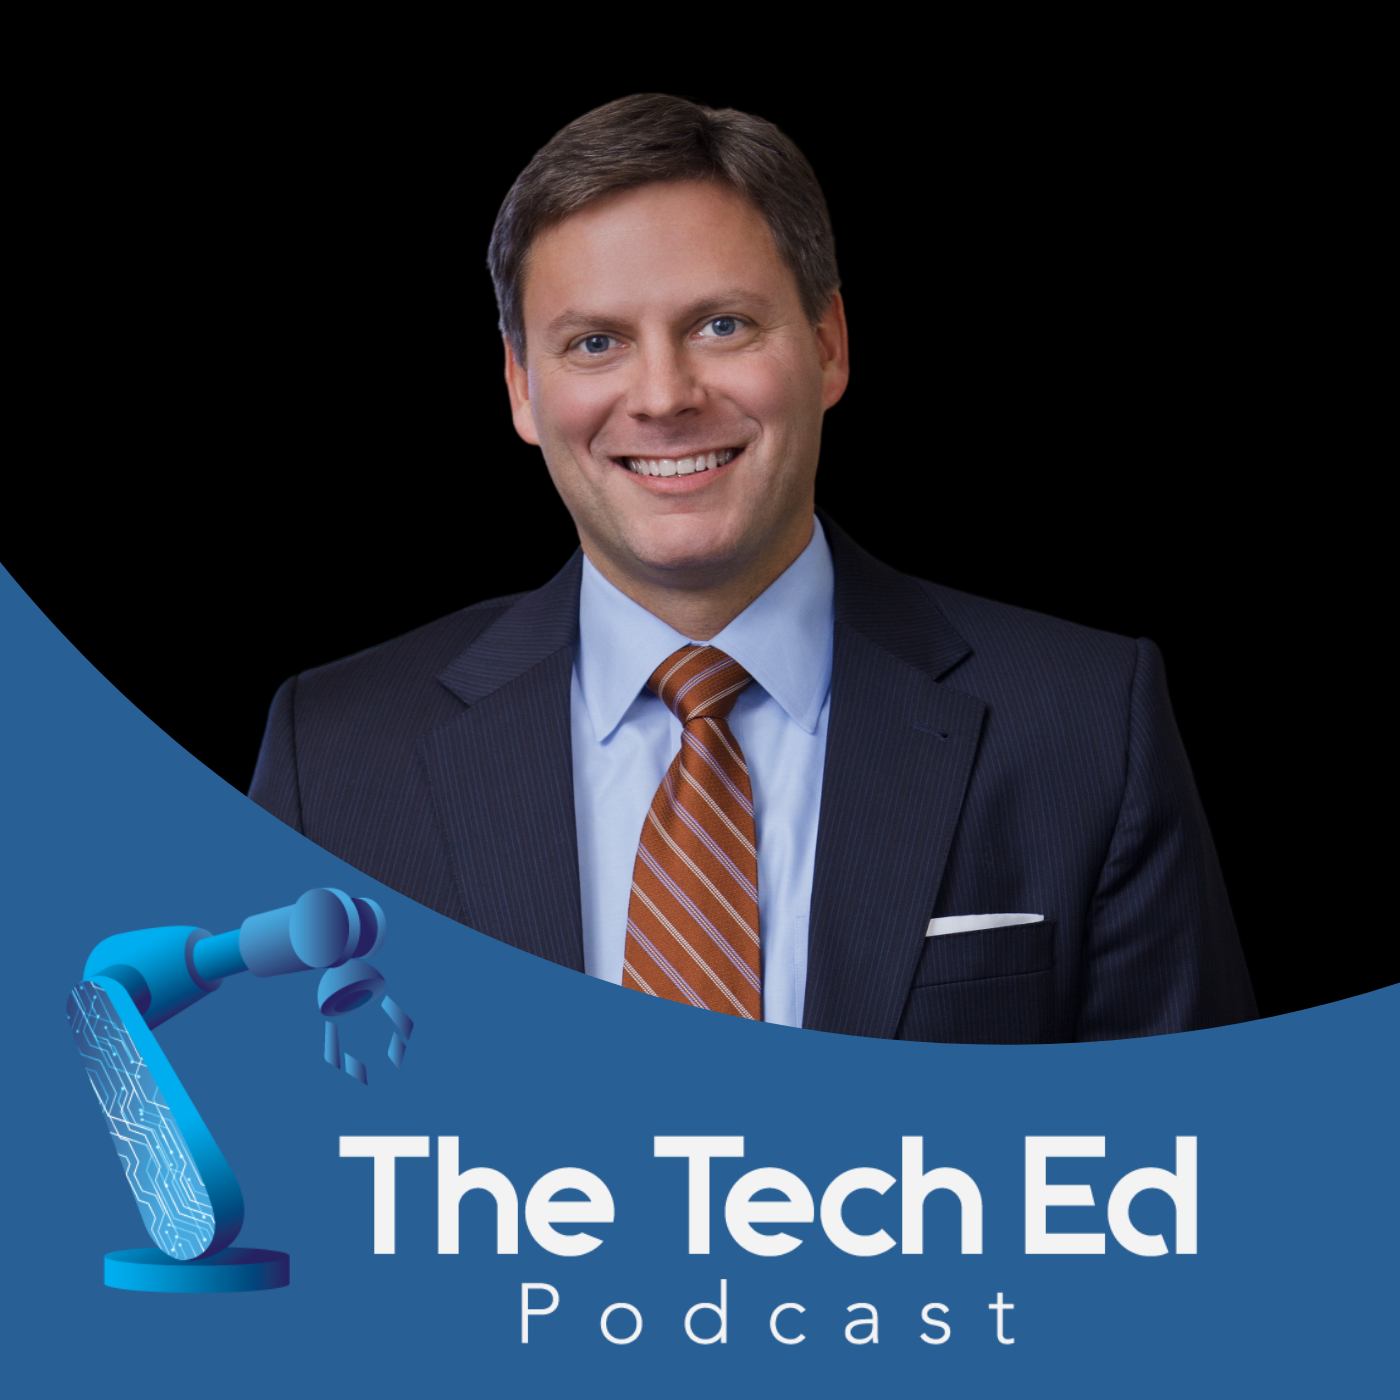 Kurt Bauer on The TechEd Podcast